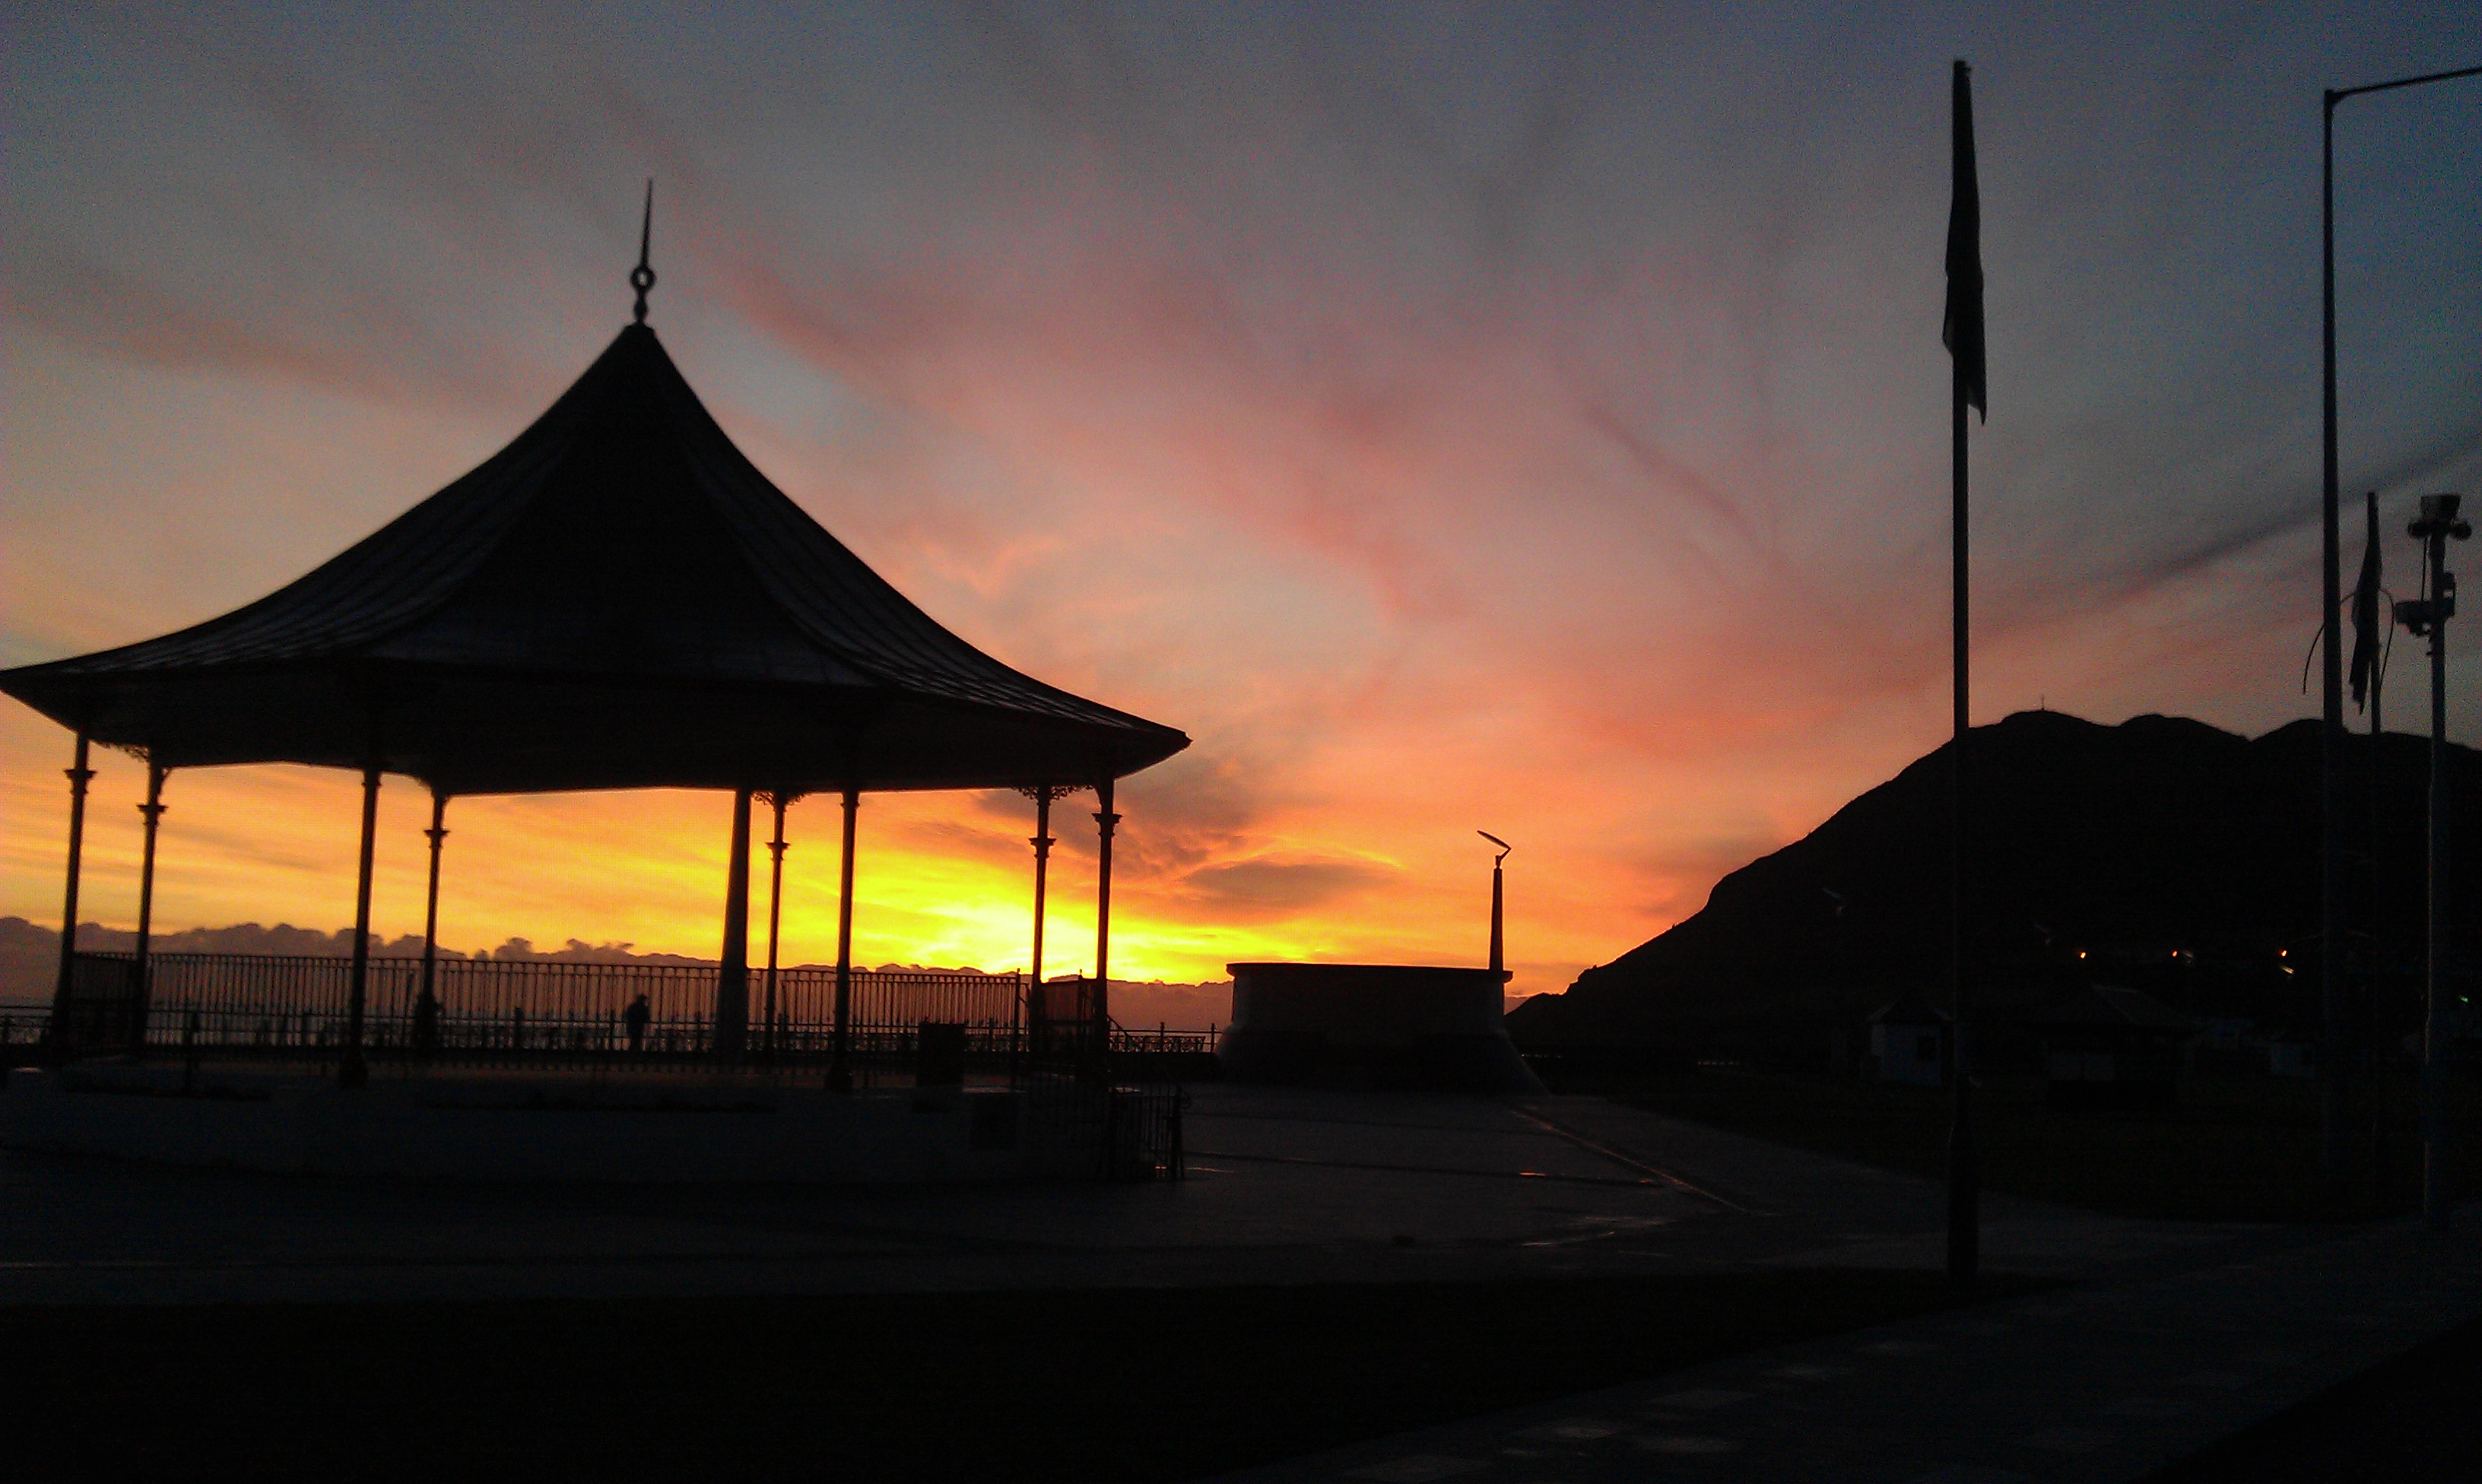 I miss the sunrises in Bray